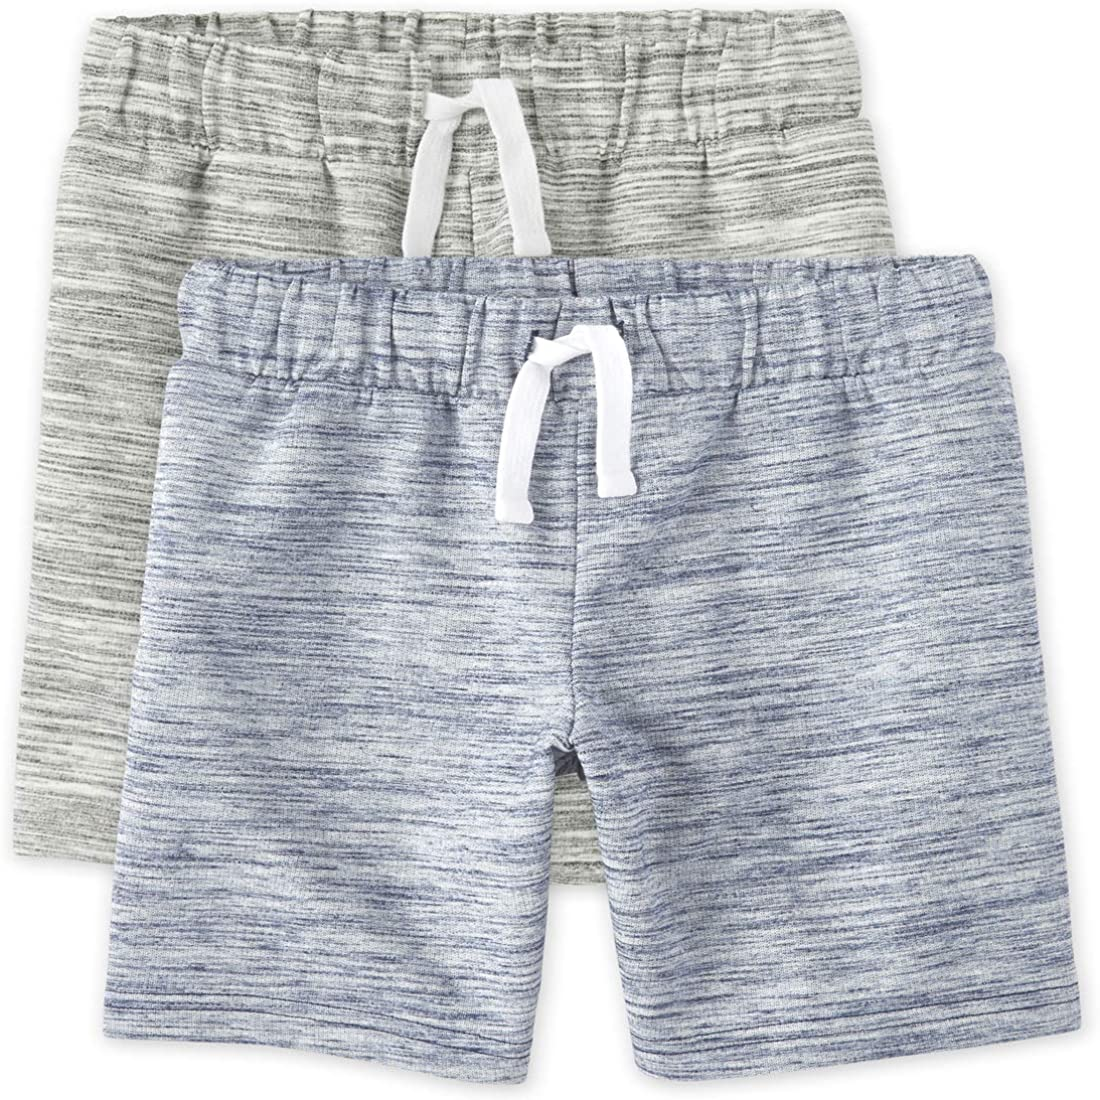 The Children's Place Boys Marled French Terry Shorts 2-Pack